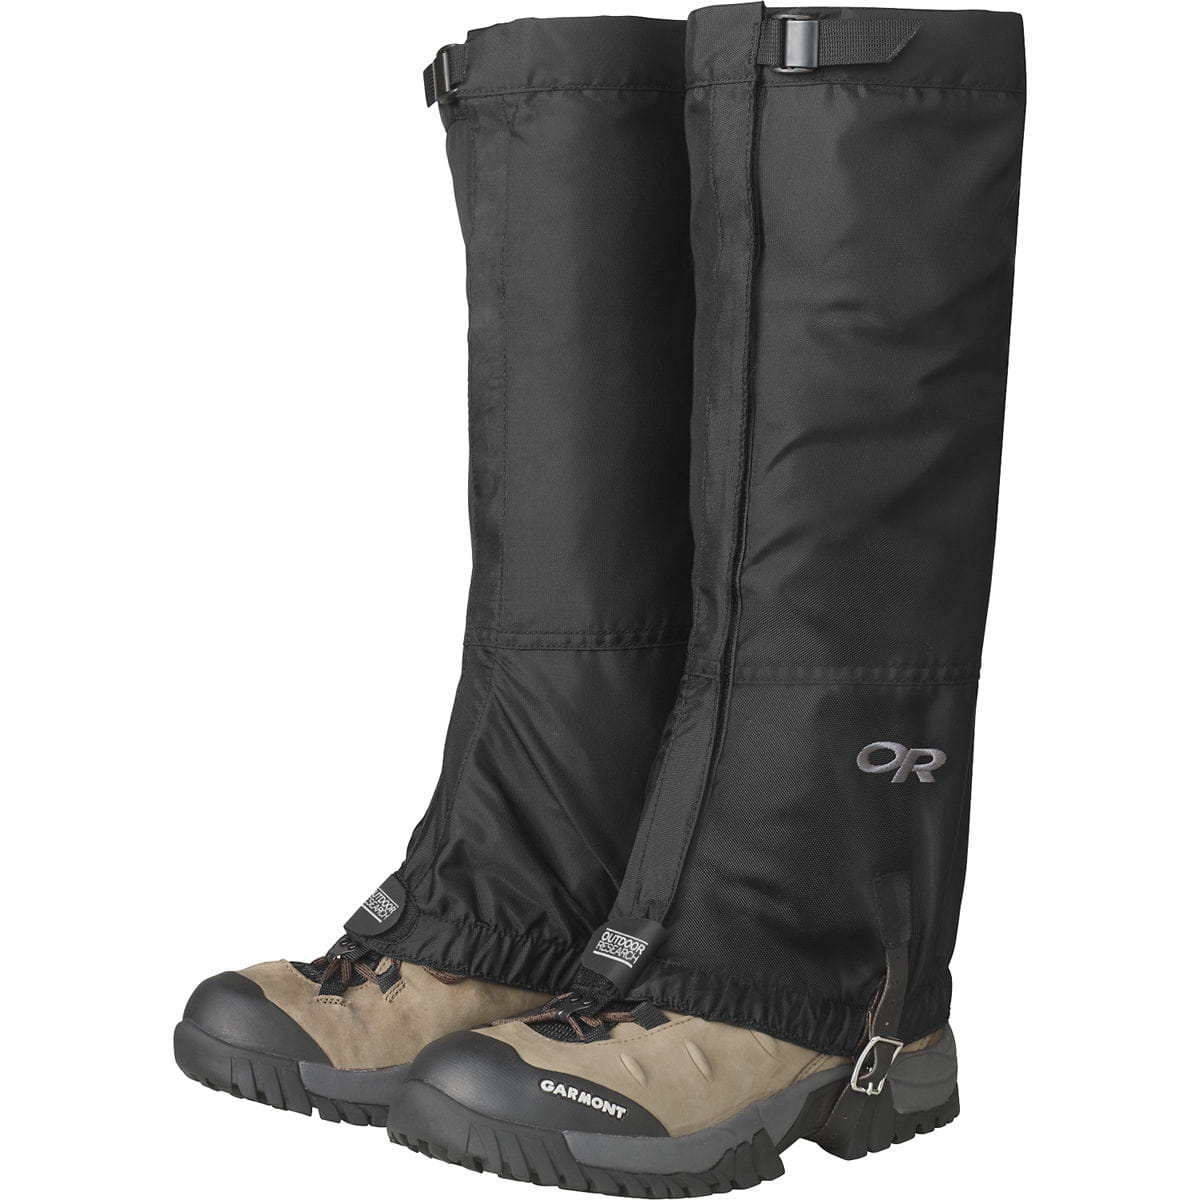 Outdoor Research Women's Rocky Mountain High Gaiters - Gamaschen - Bild 1